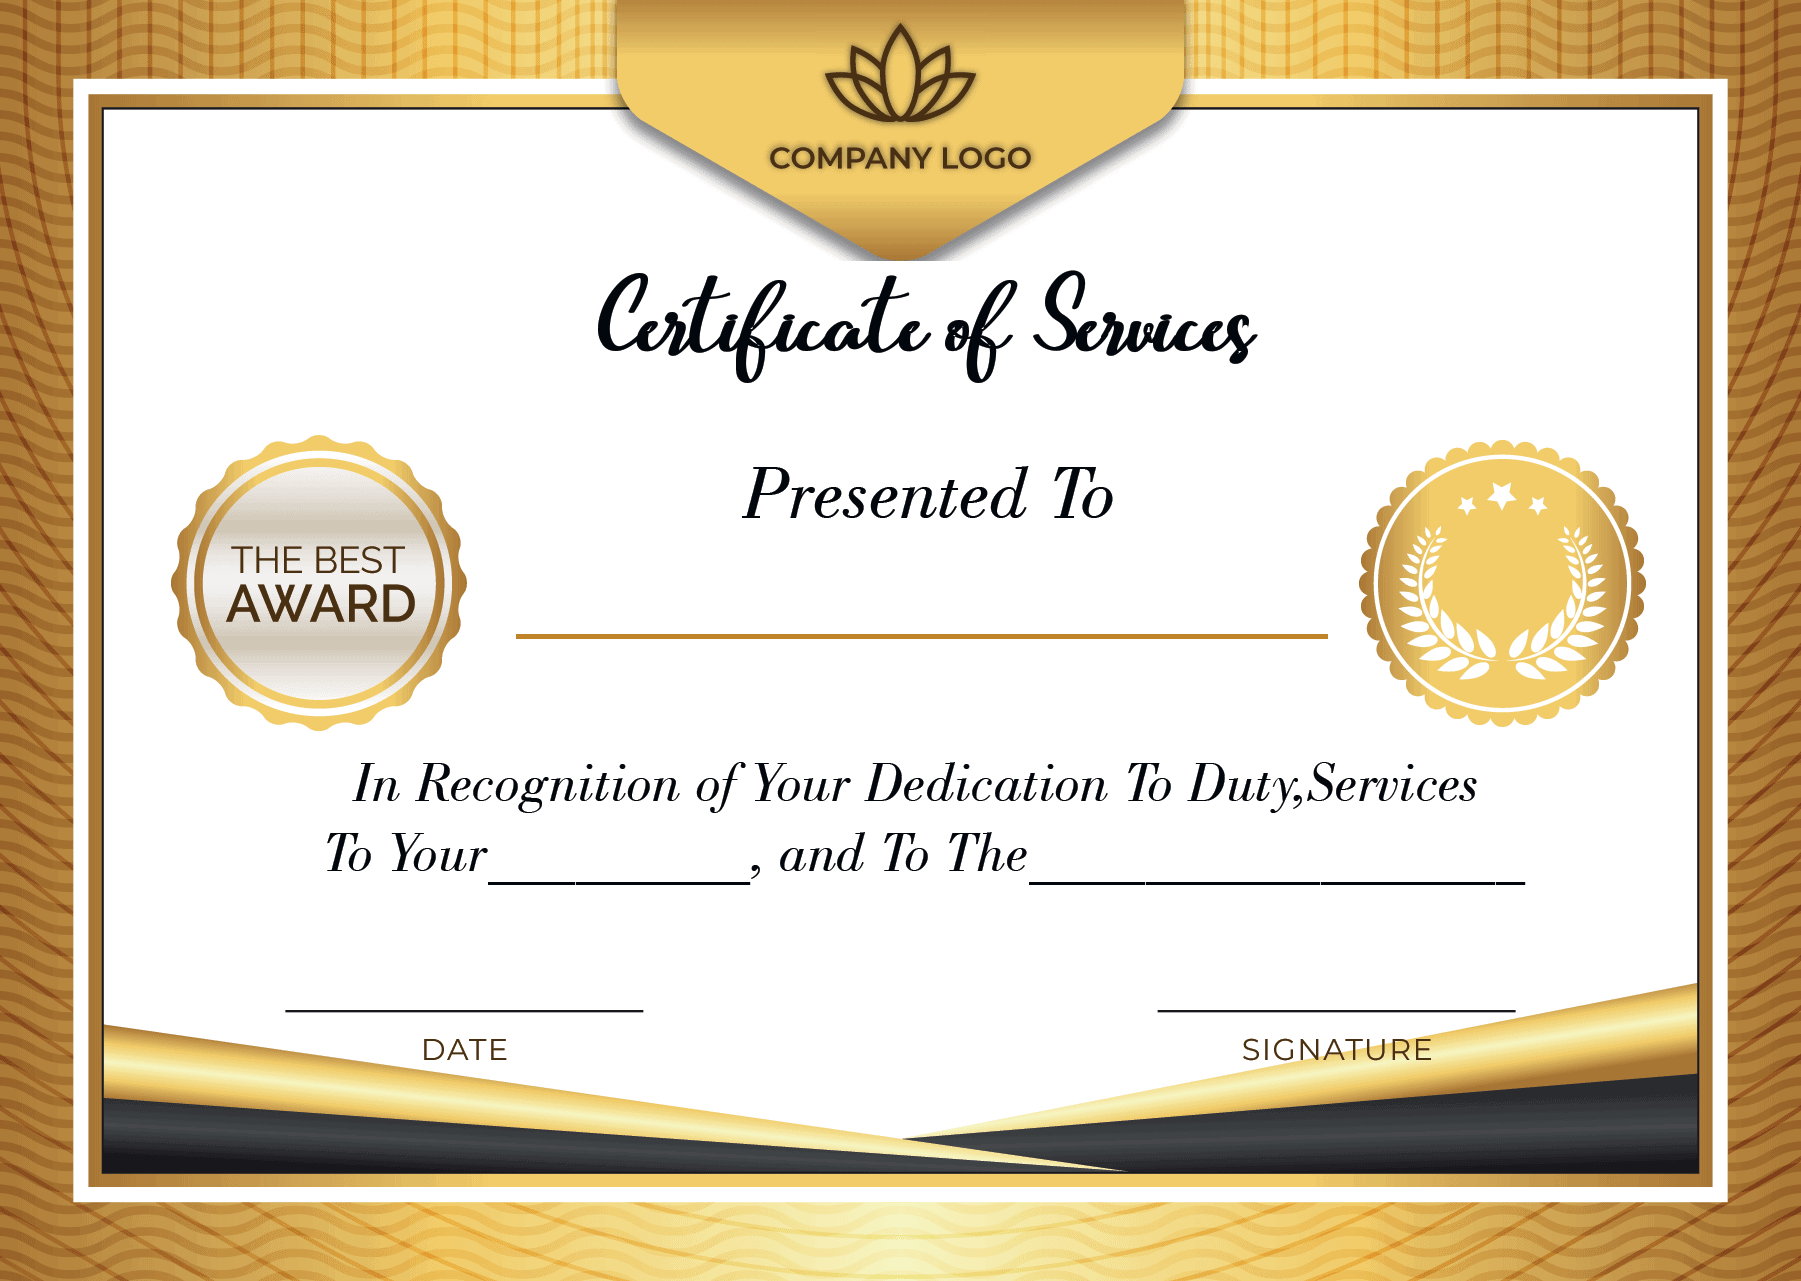 Certificate of Service Printable